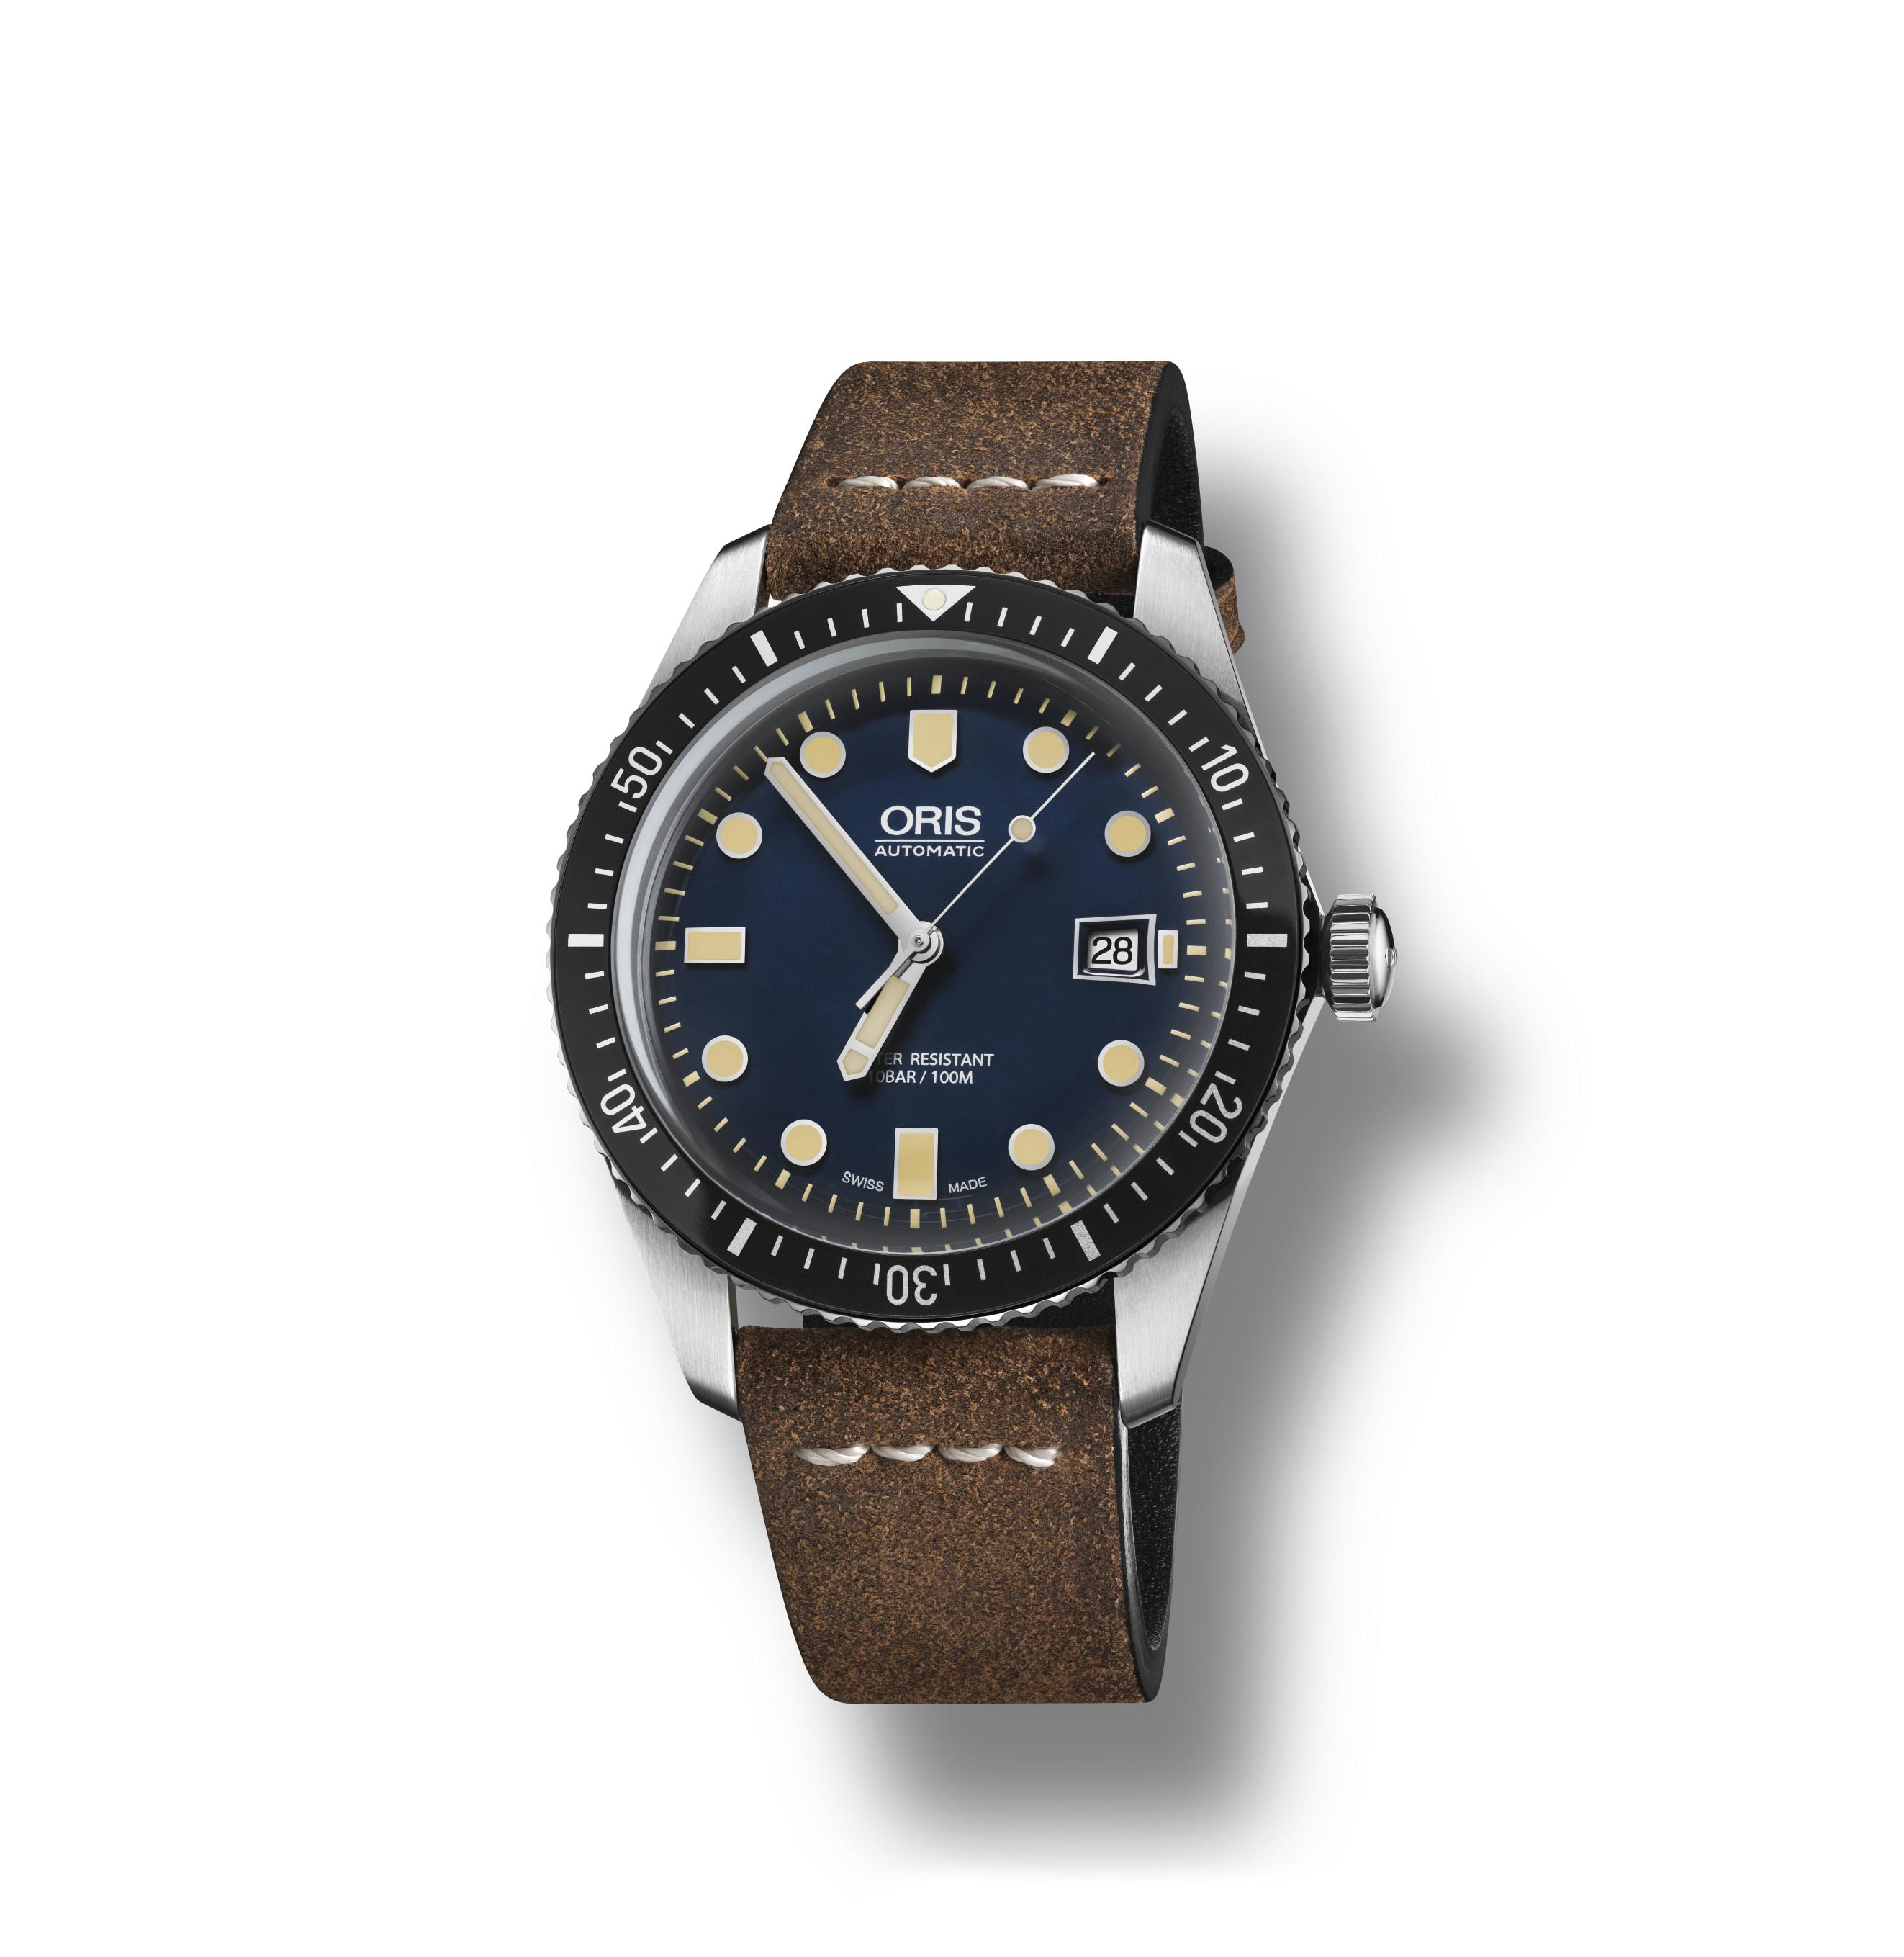 torch companies luxury pin carp watch and fishing watches